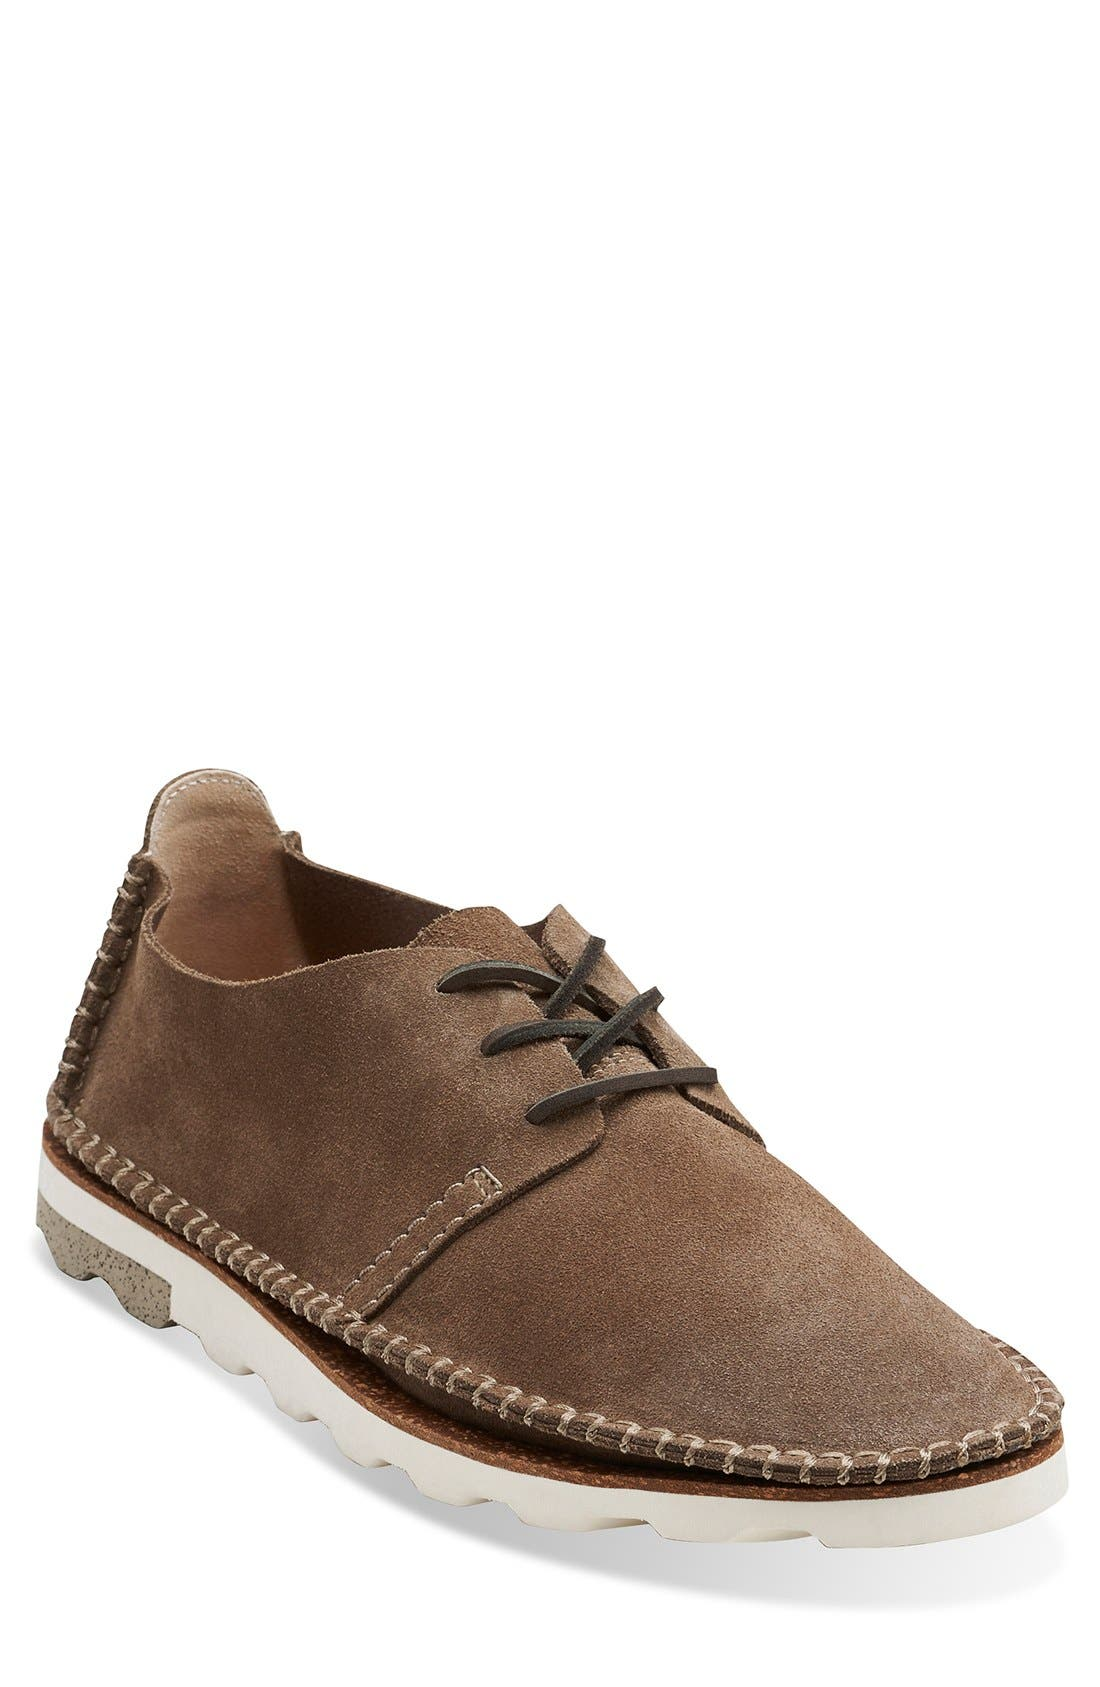 Main Image - Clarks® 'Dakin Walk' Suede Plain Toe Derby (Men)